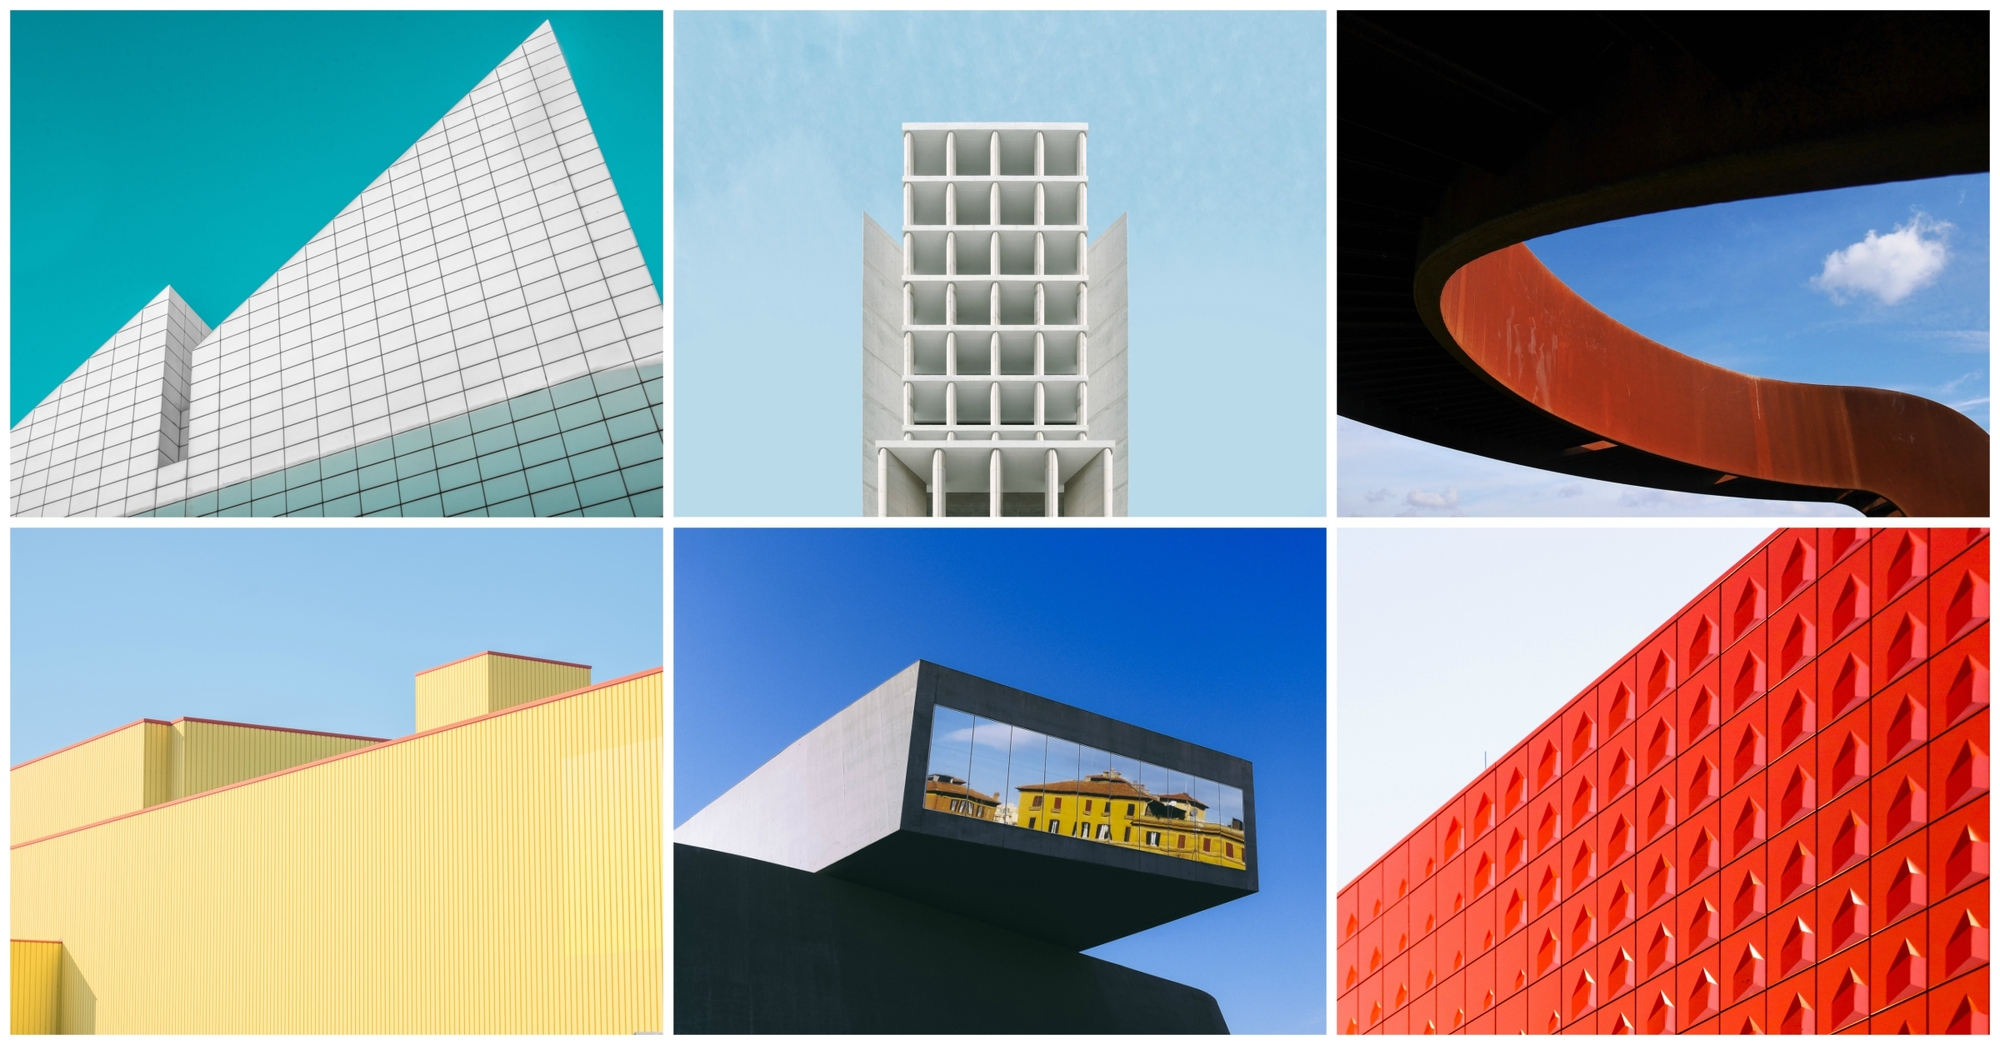 20 Photos Selected as Winners of EyeEm's Minimalist Architecture  Photography Mission, Courtesy of EyeEm